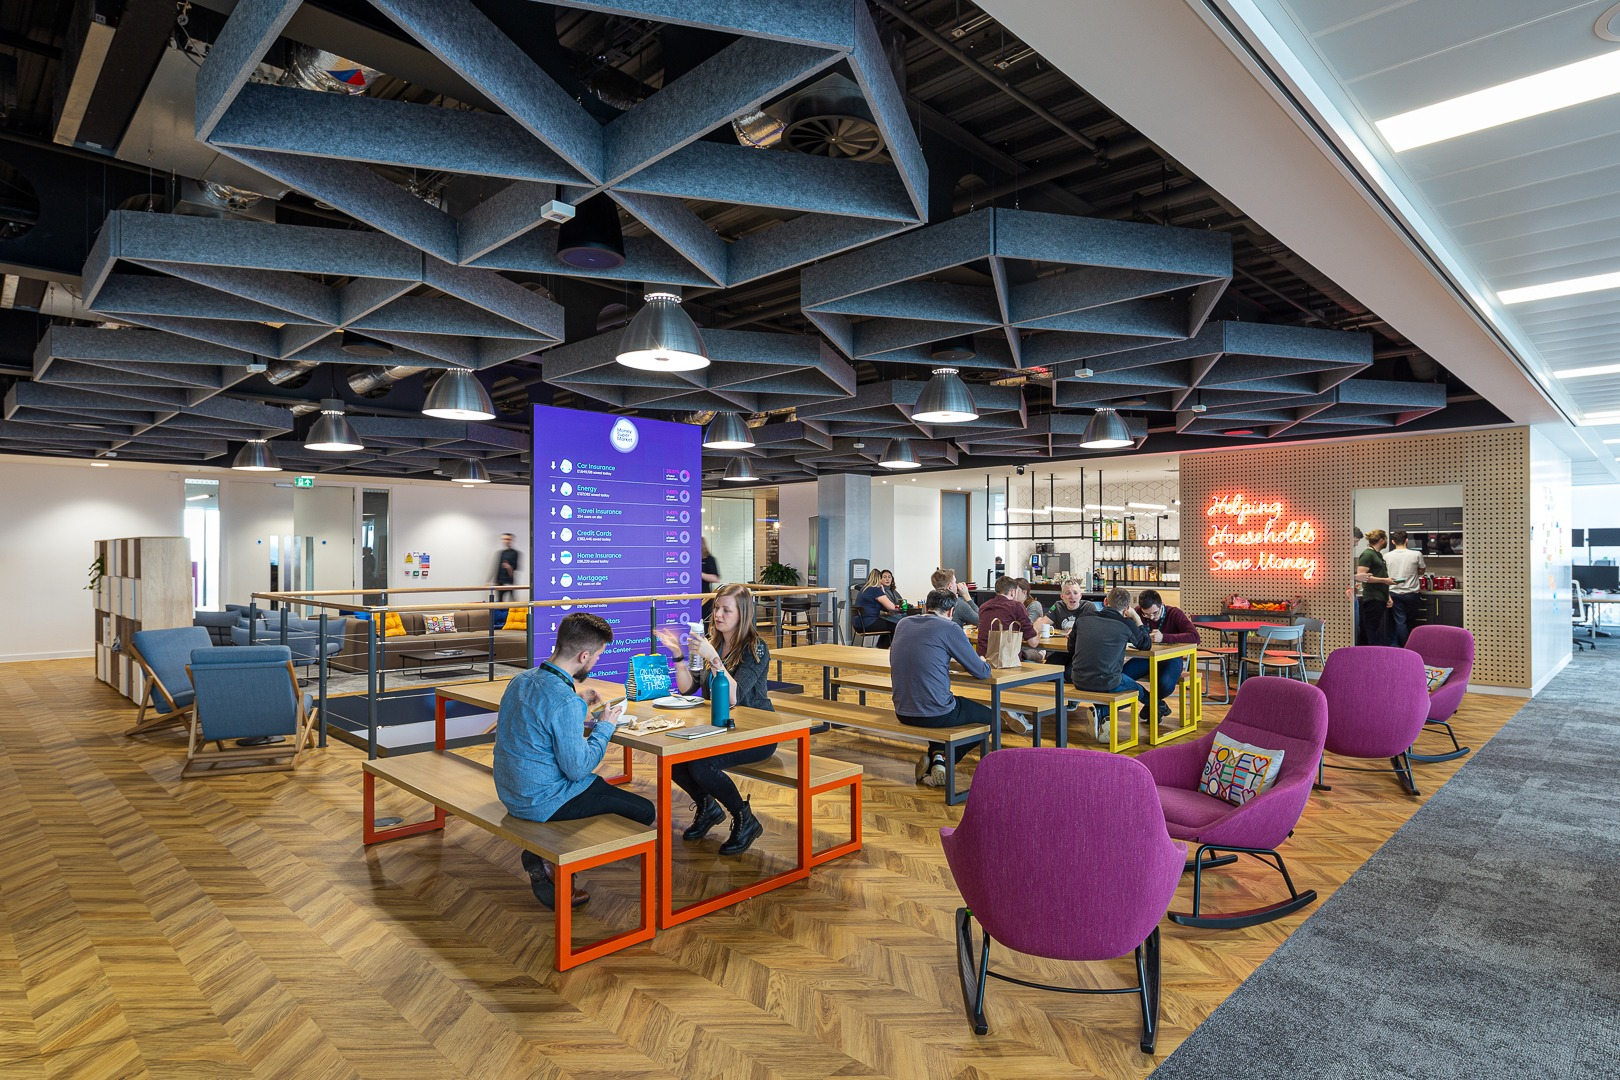 MoneySuperMarket Manchester - Creating a tech hub for the future